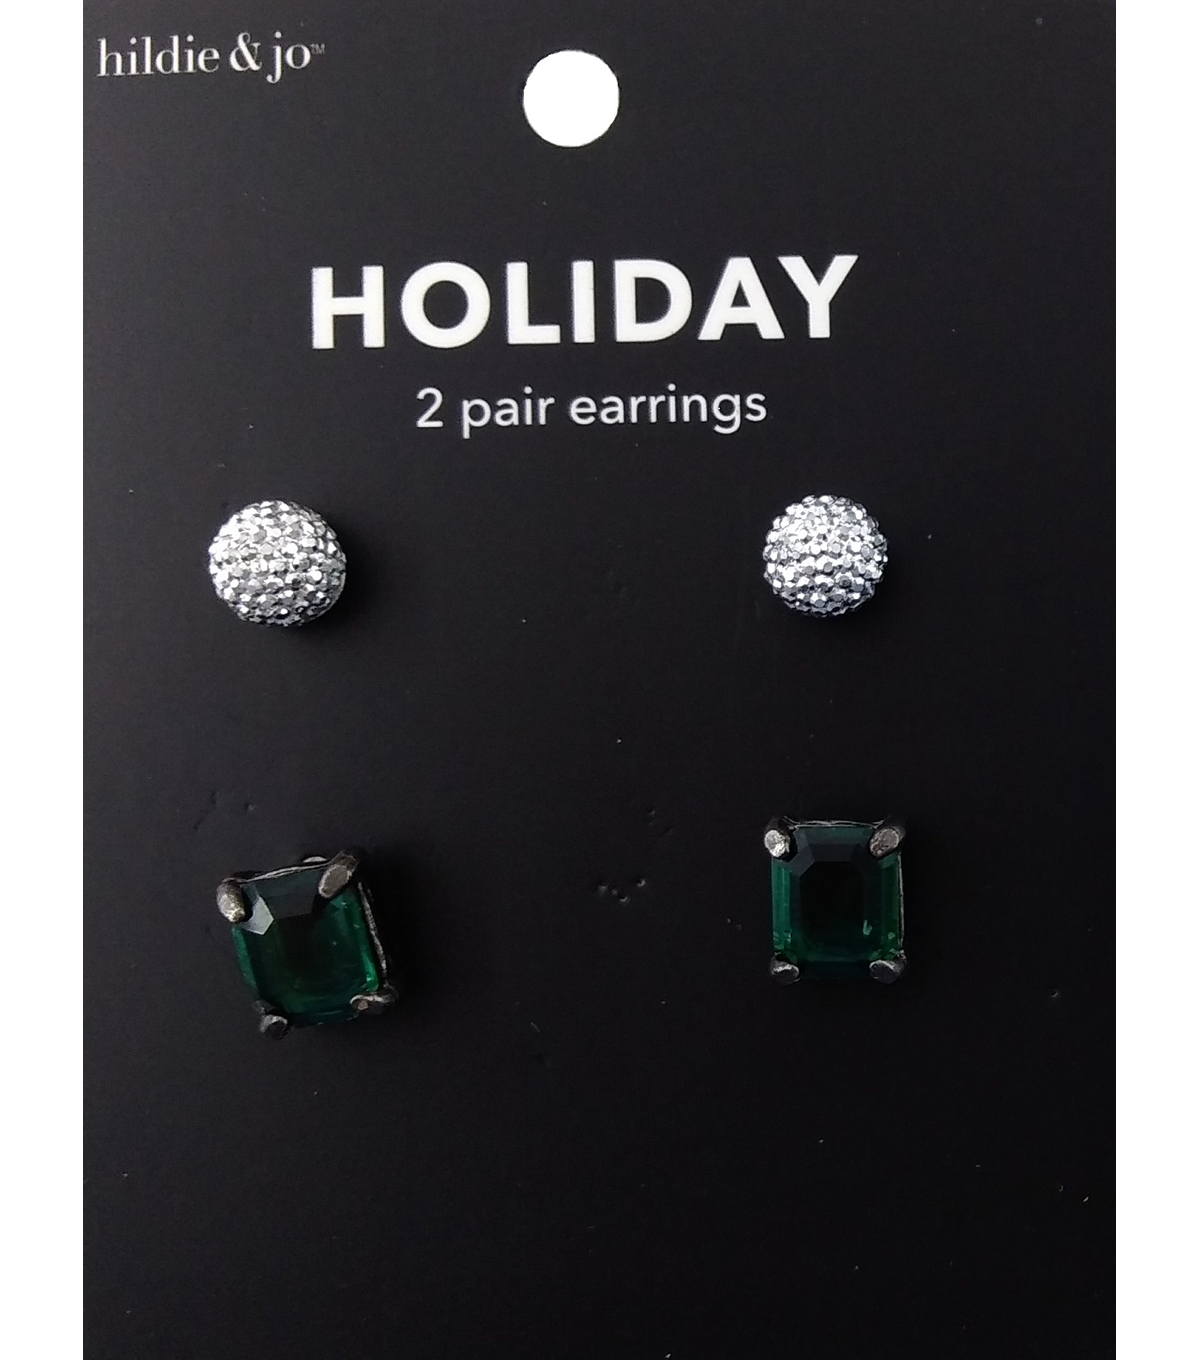 hildie & jo Holiday Earrings-Rhinestone & Jewels